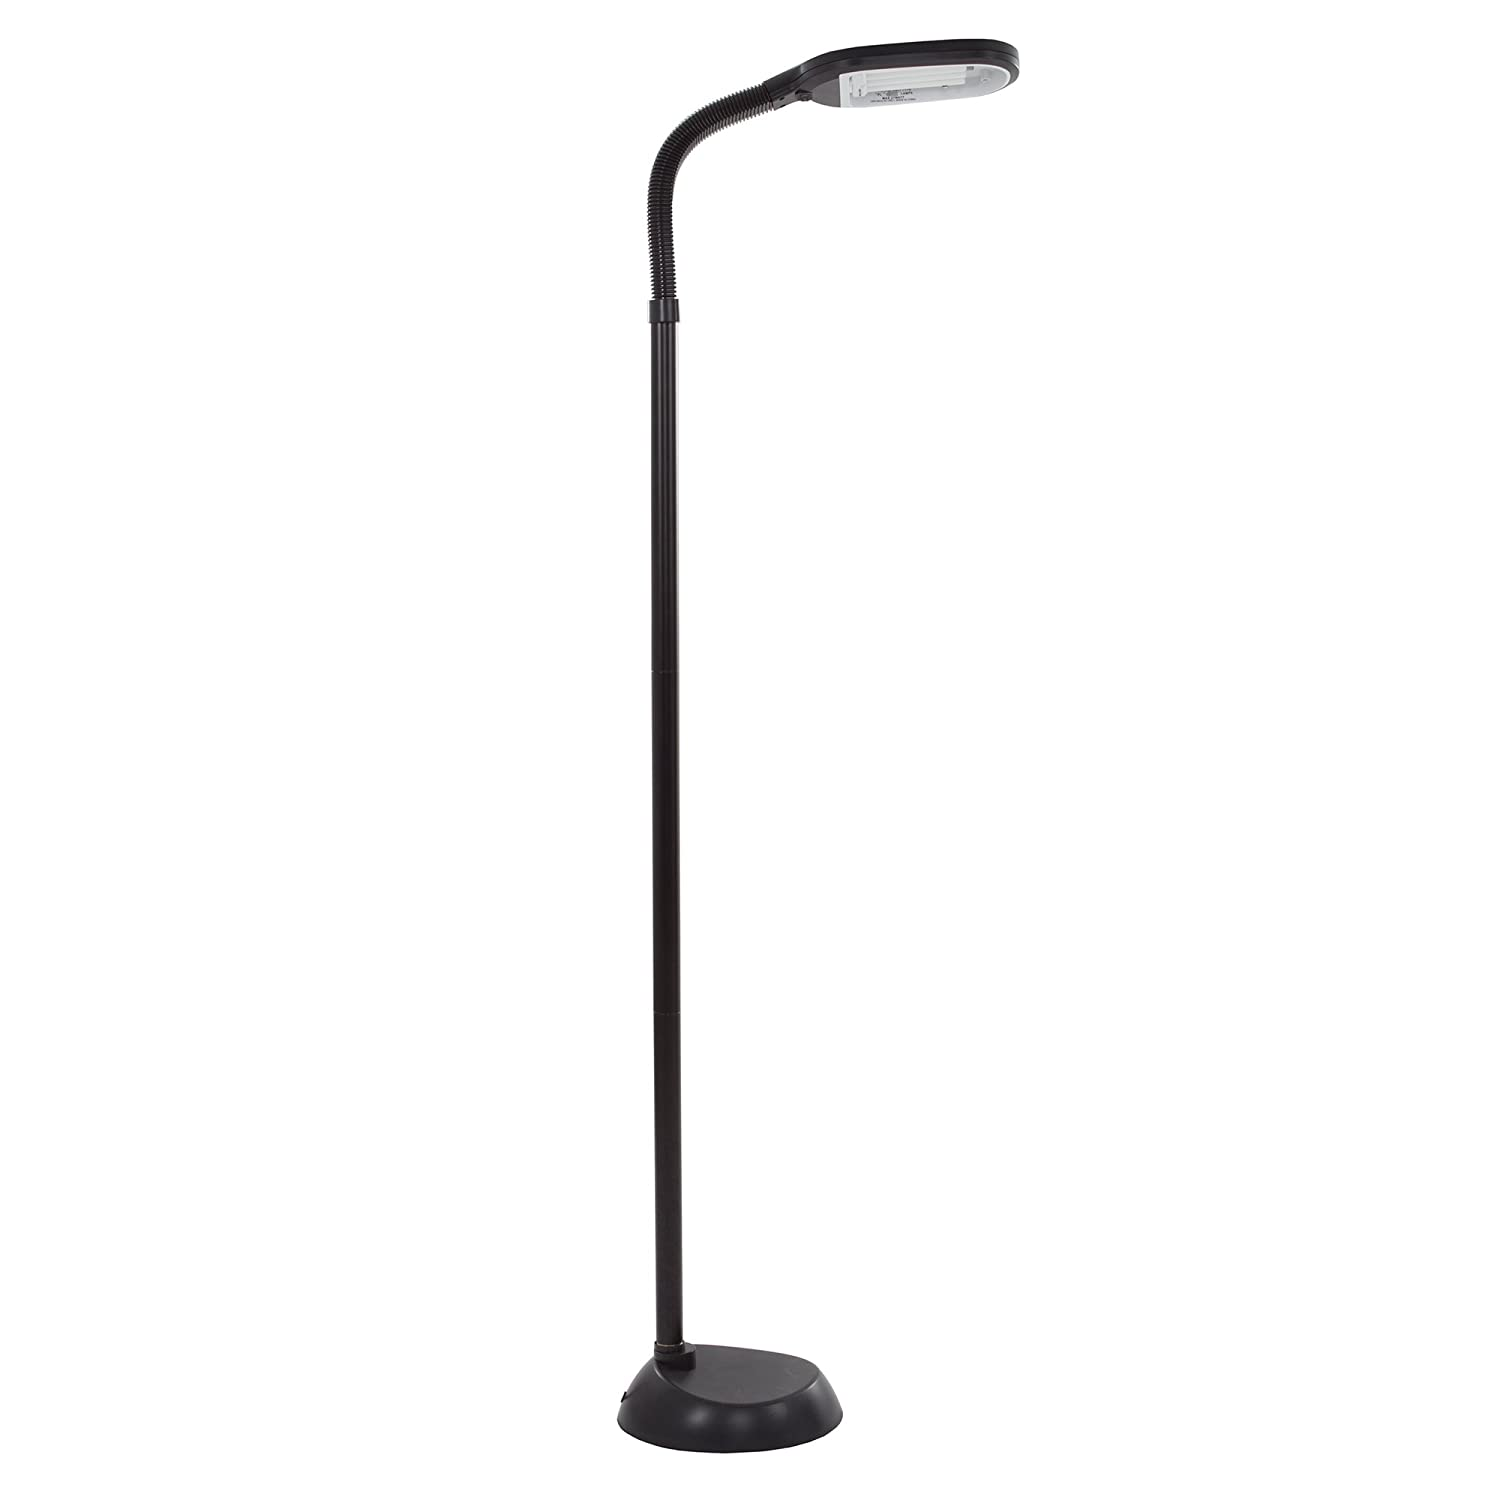 Best floor reading lamps for seniors - Natural Full Spectrum Sunlight Therapy Reading And Crafting Floor Lamp By Lavish Home Black Adjustable Gooseneck